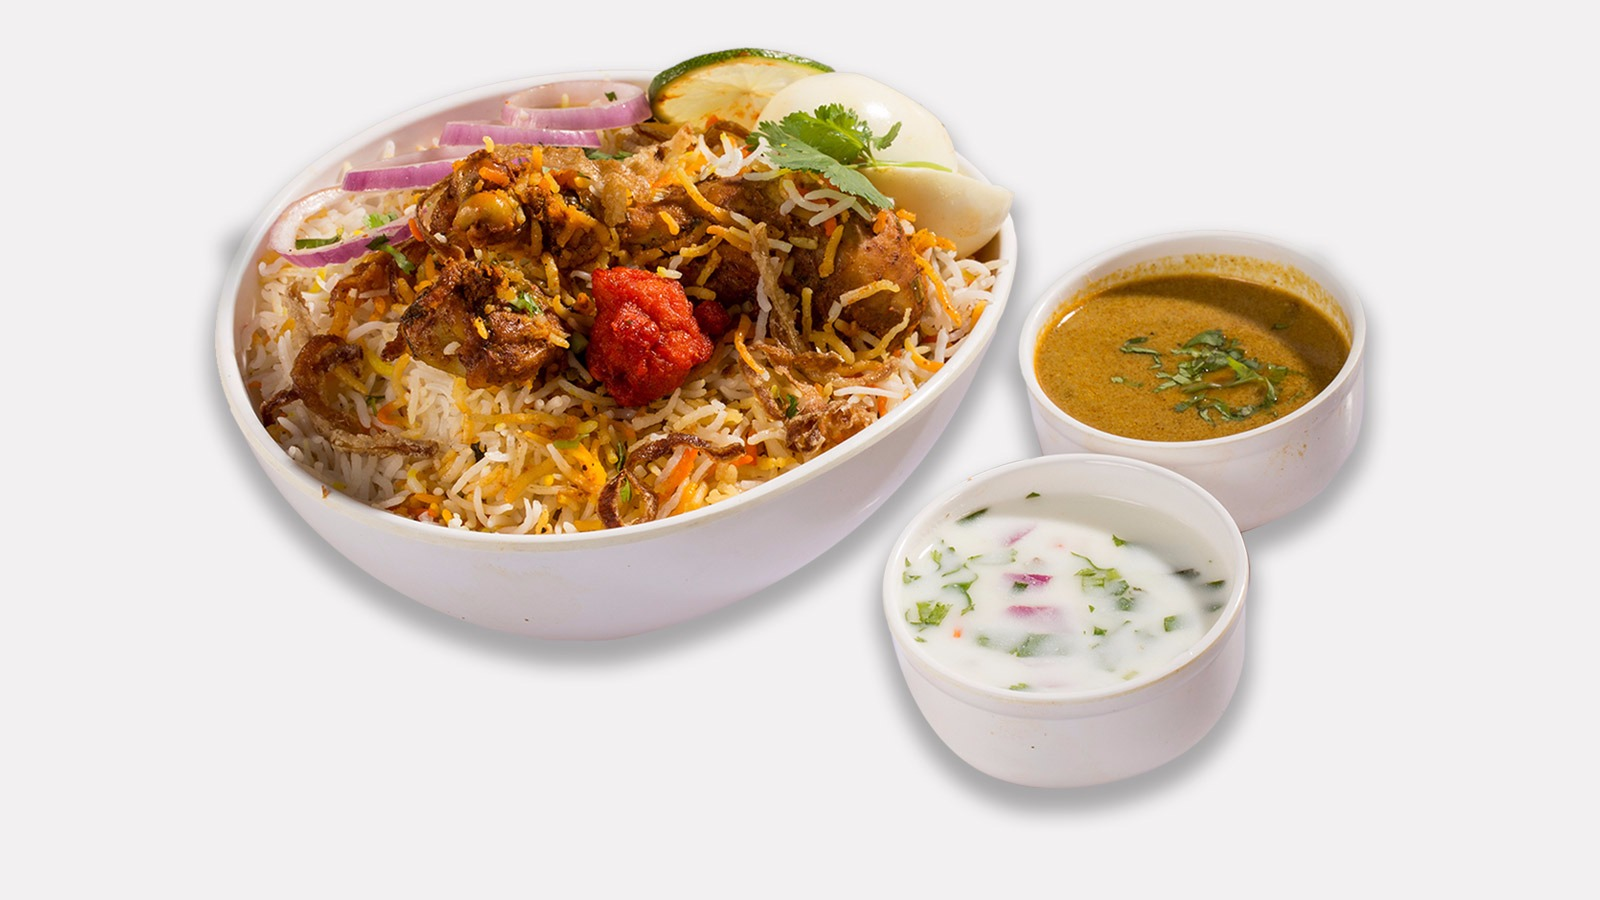 Bawarchi Biryanis Framingham Ma Indian Restaurant In Home Order Online